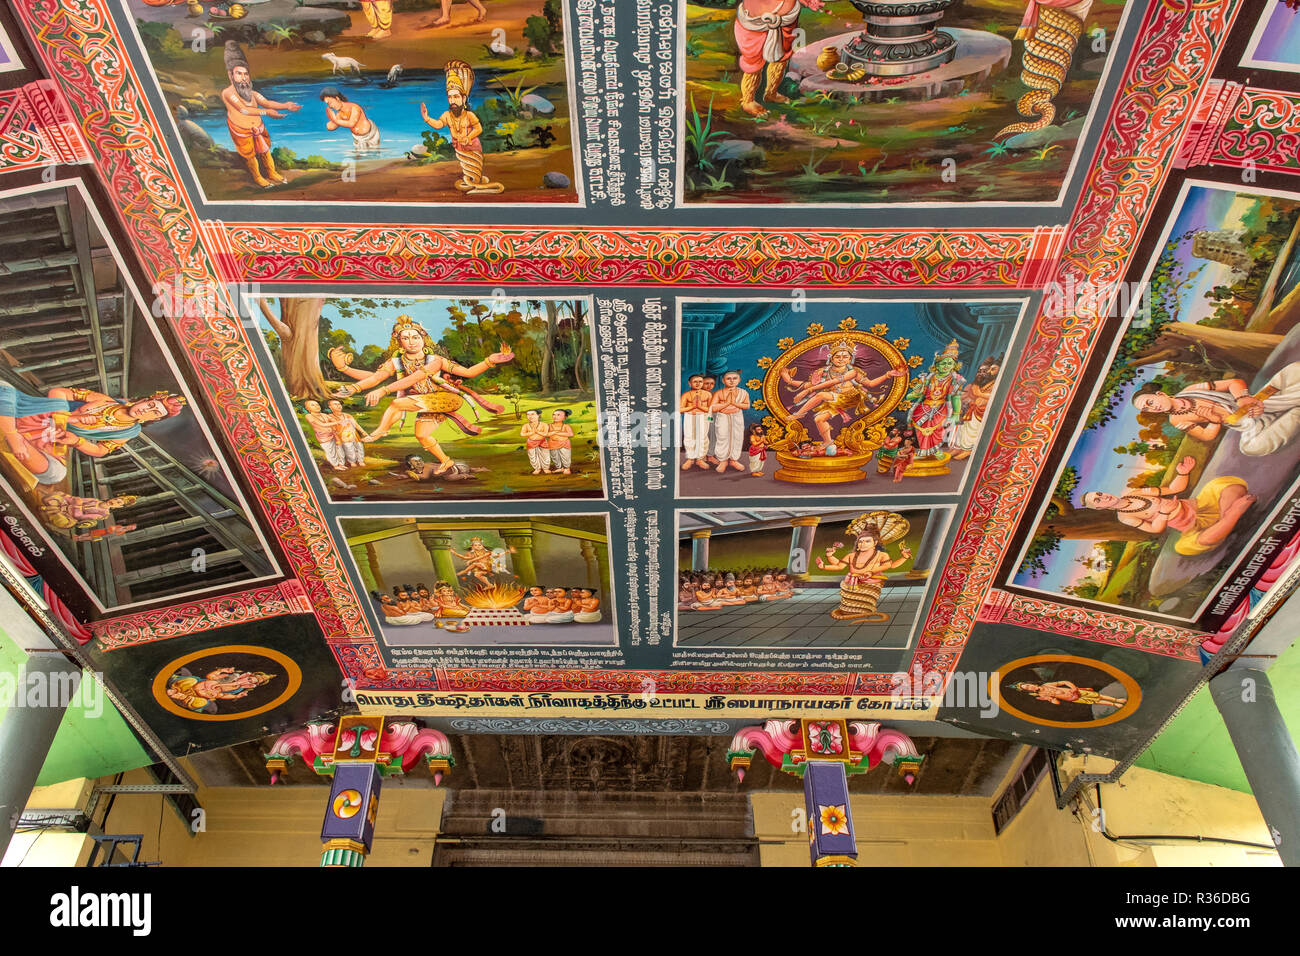 Page 2 - Chidambaram Nataraja Temple High Resolution Stock Photography and  Images - Alamy